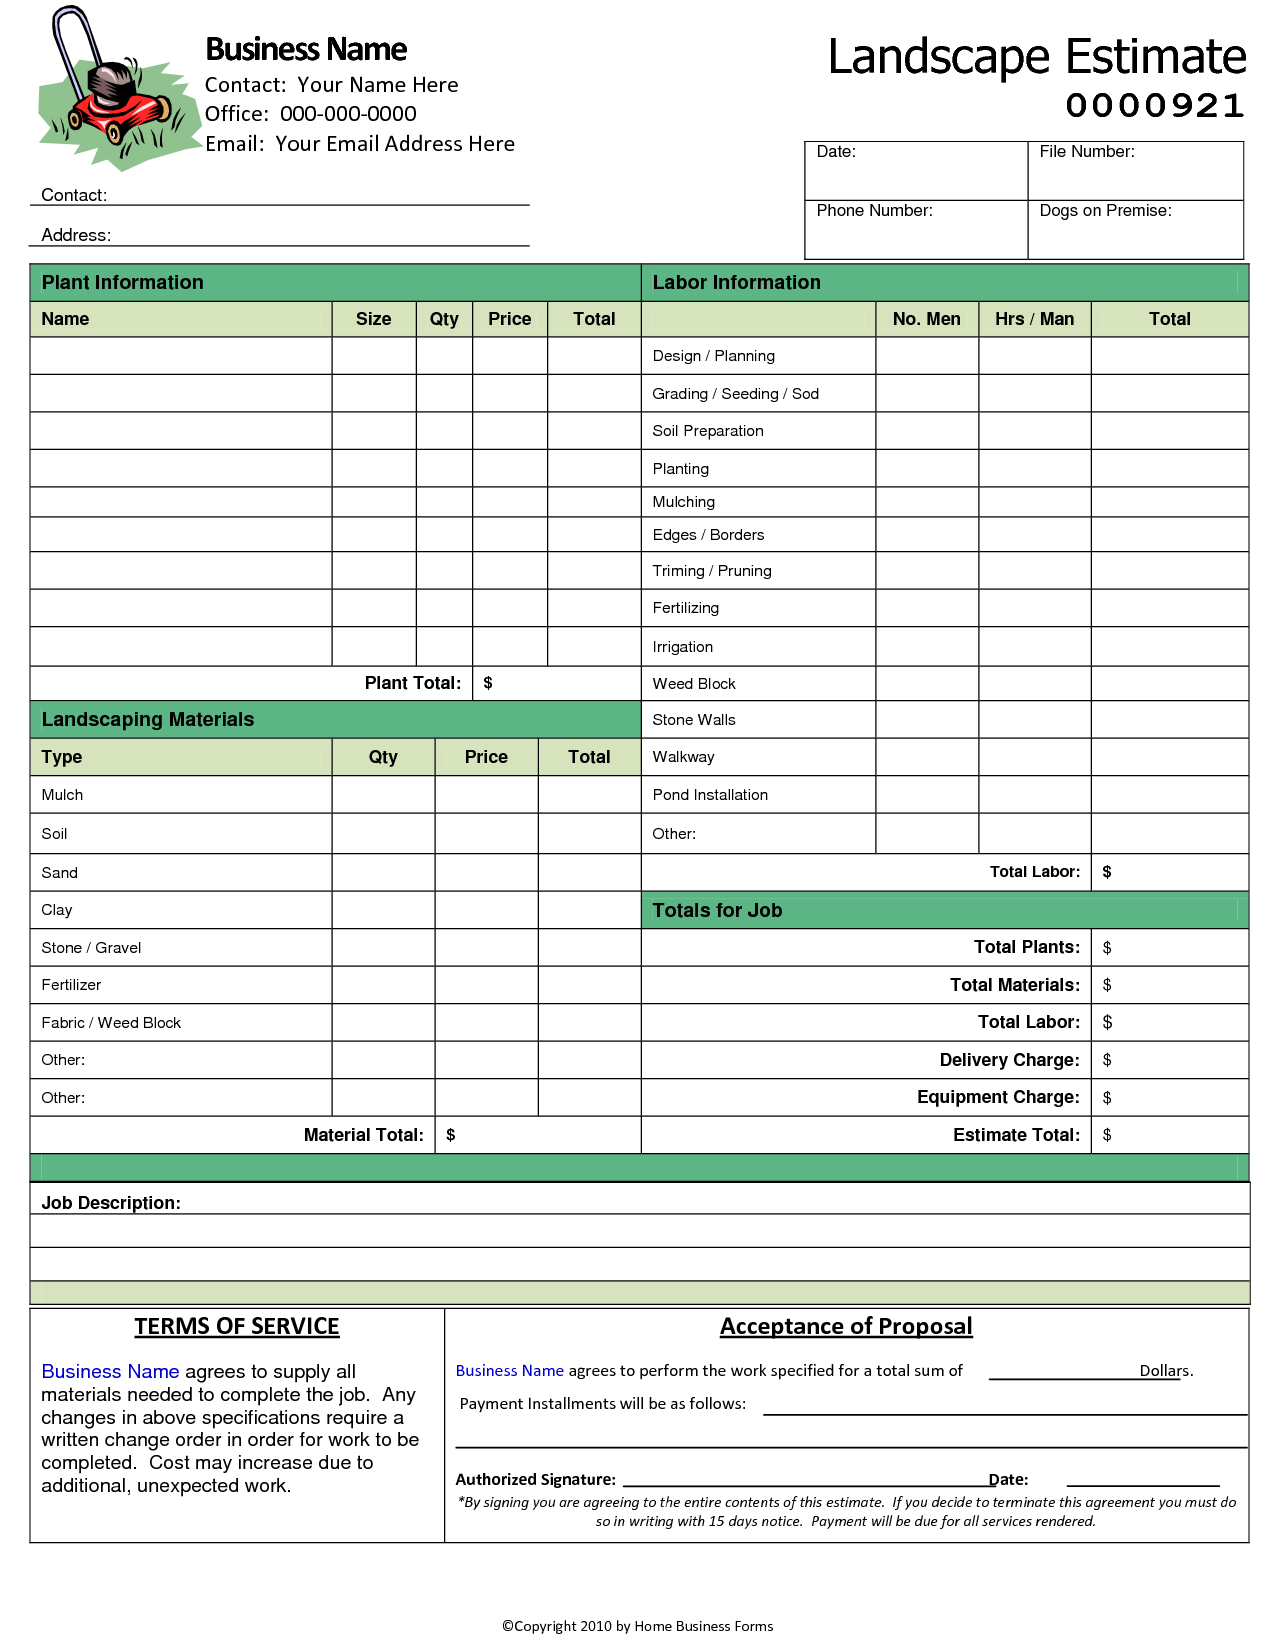 Free Microsoft Resume Templates For Word The Balance Landscaping Invoice Template Word Invoice Example